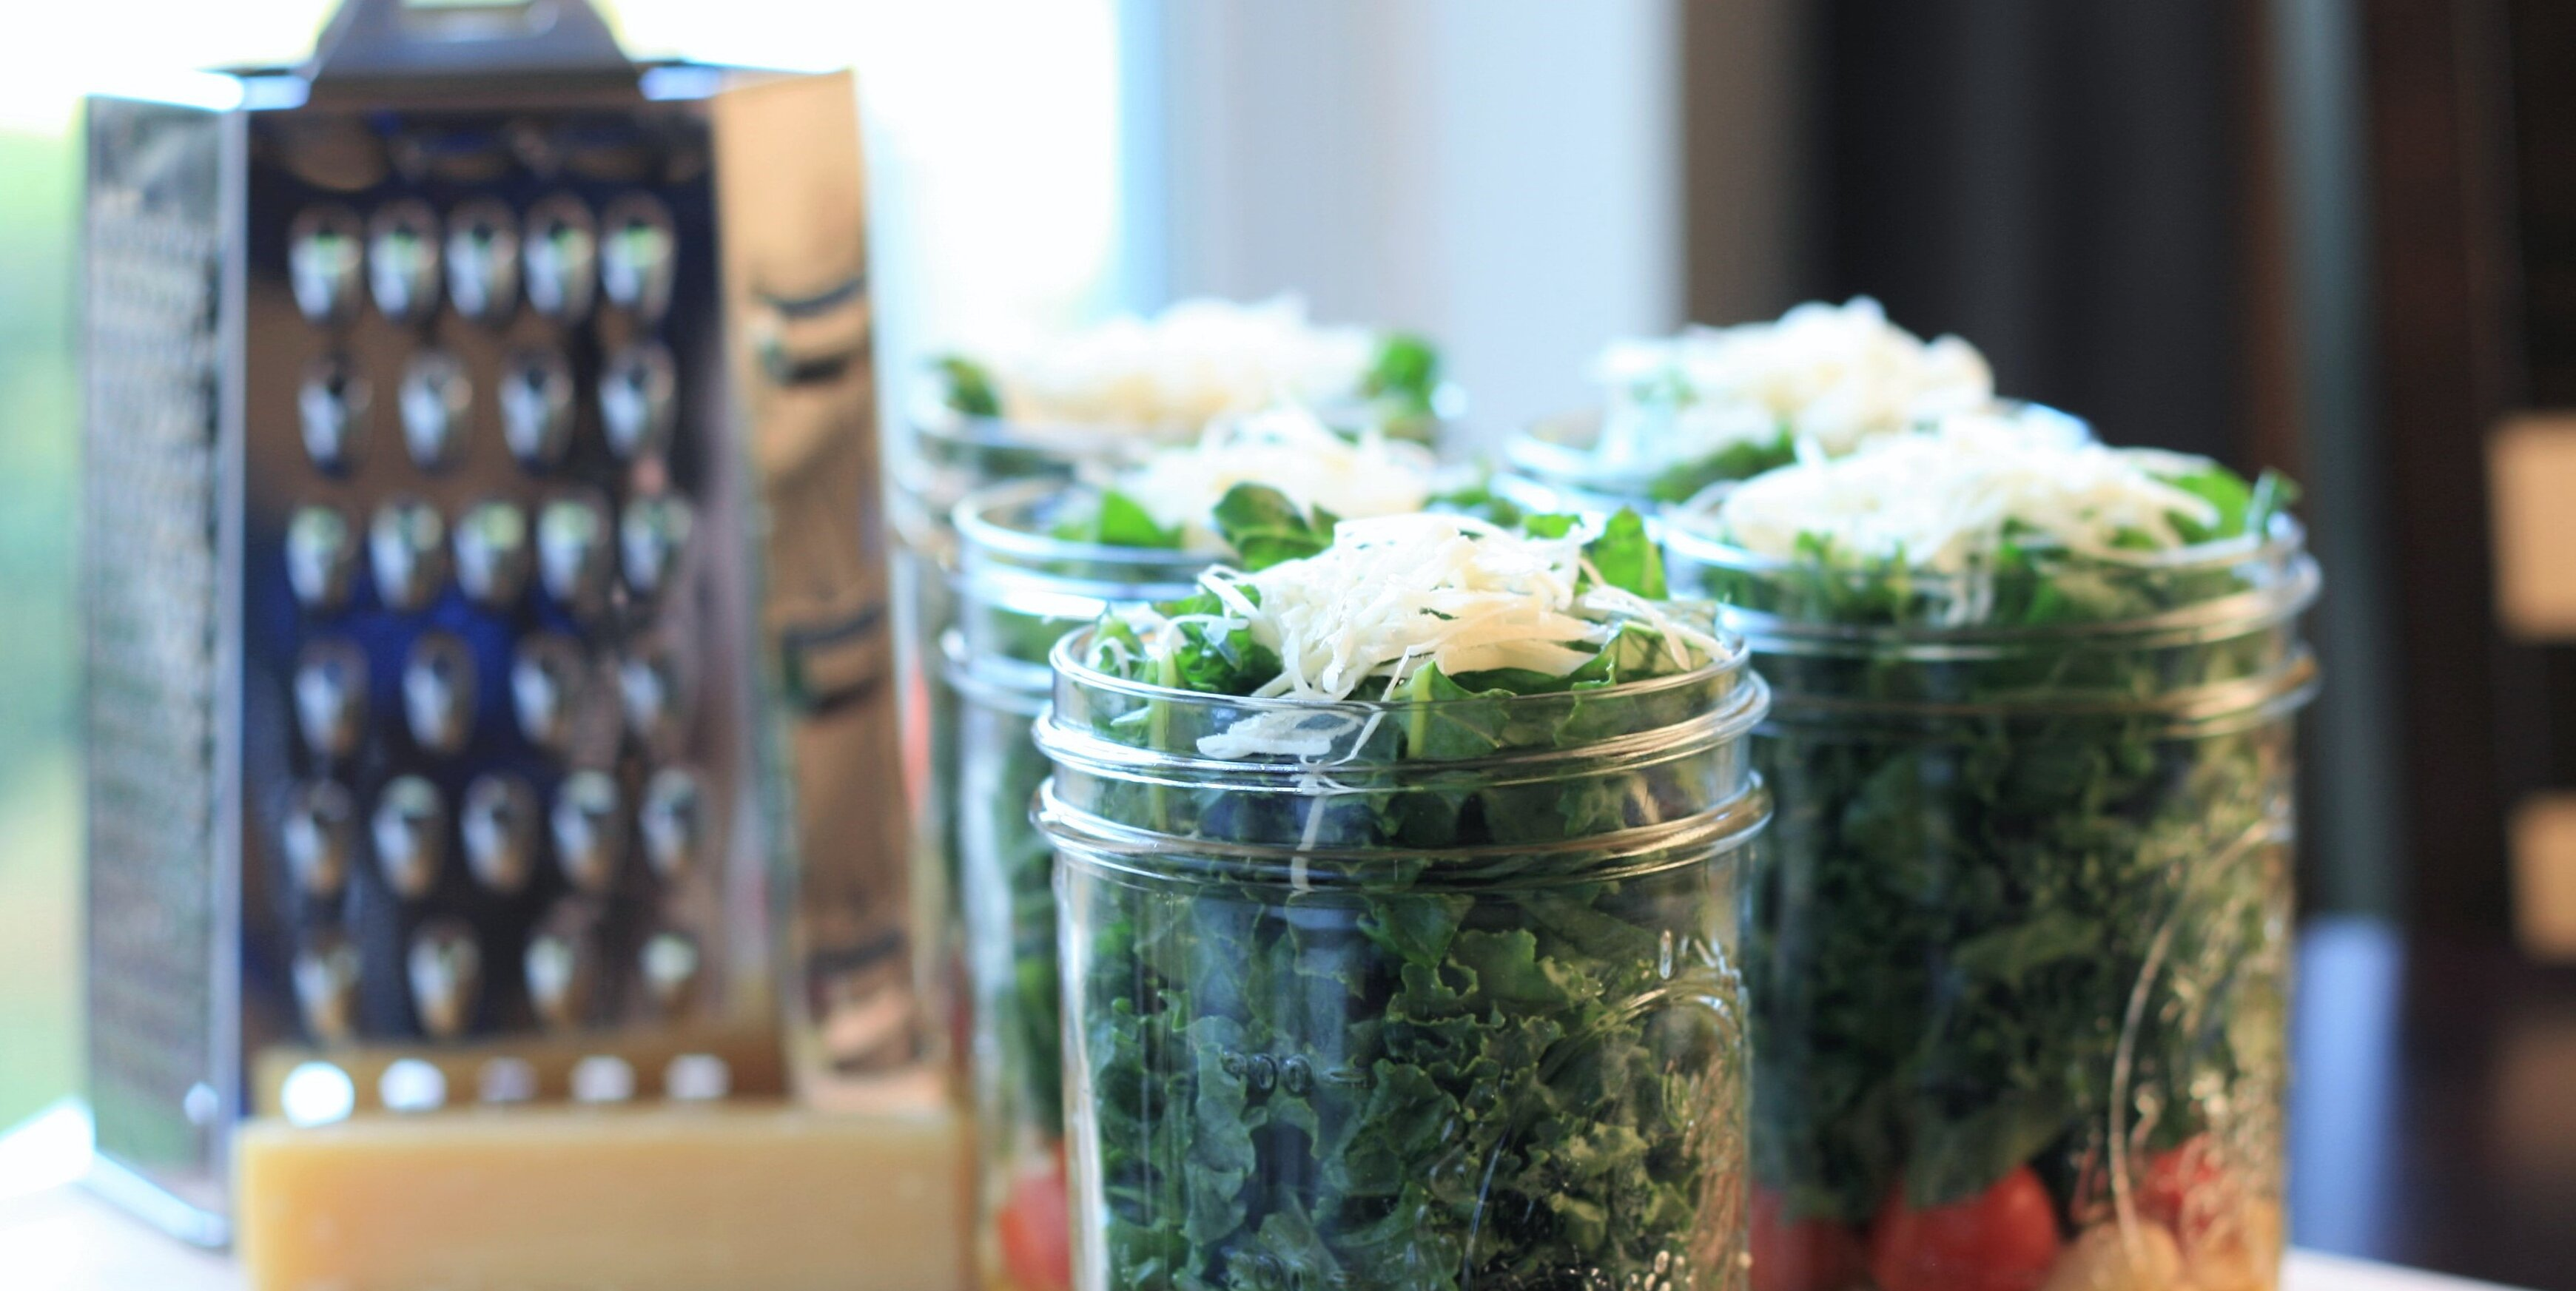 kale and cannellini bean salad in a jar recipe